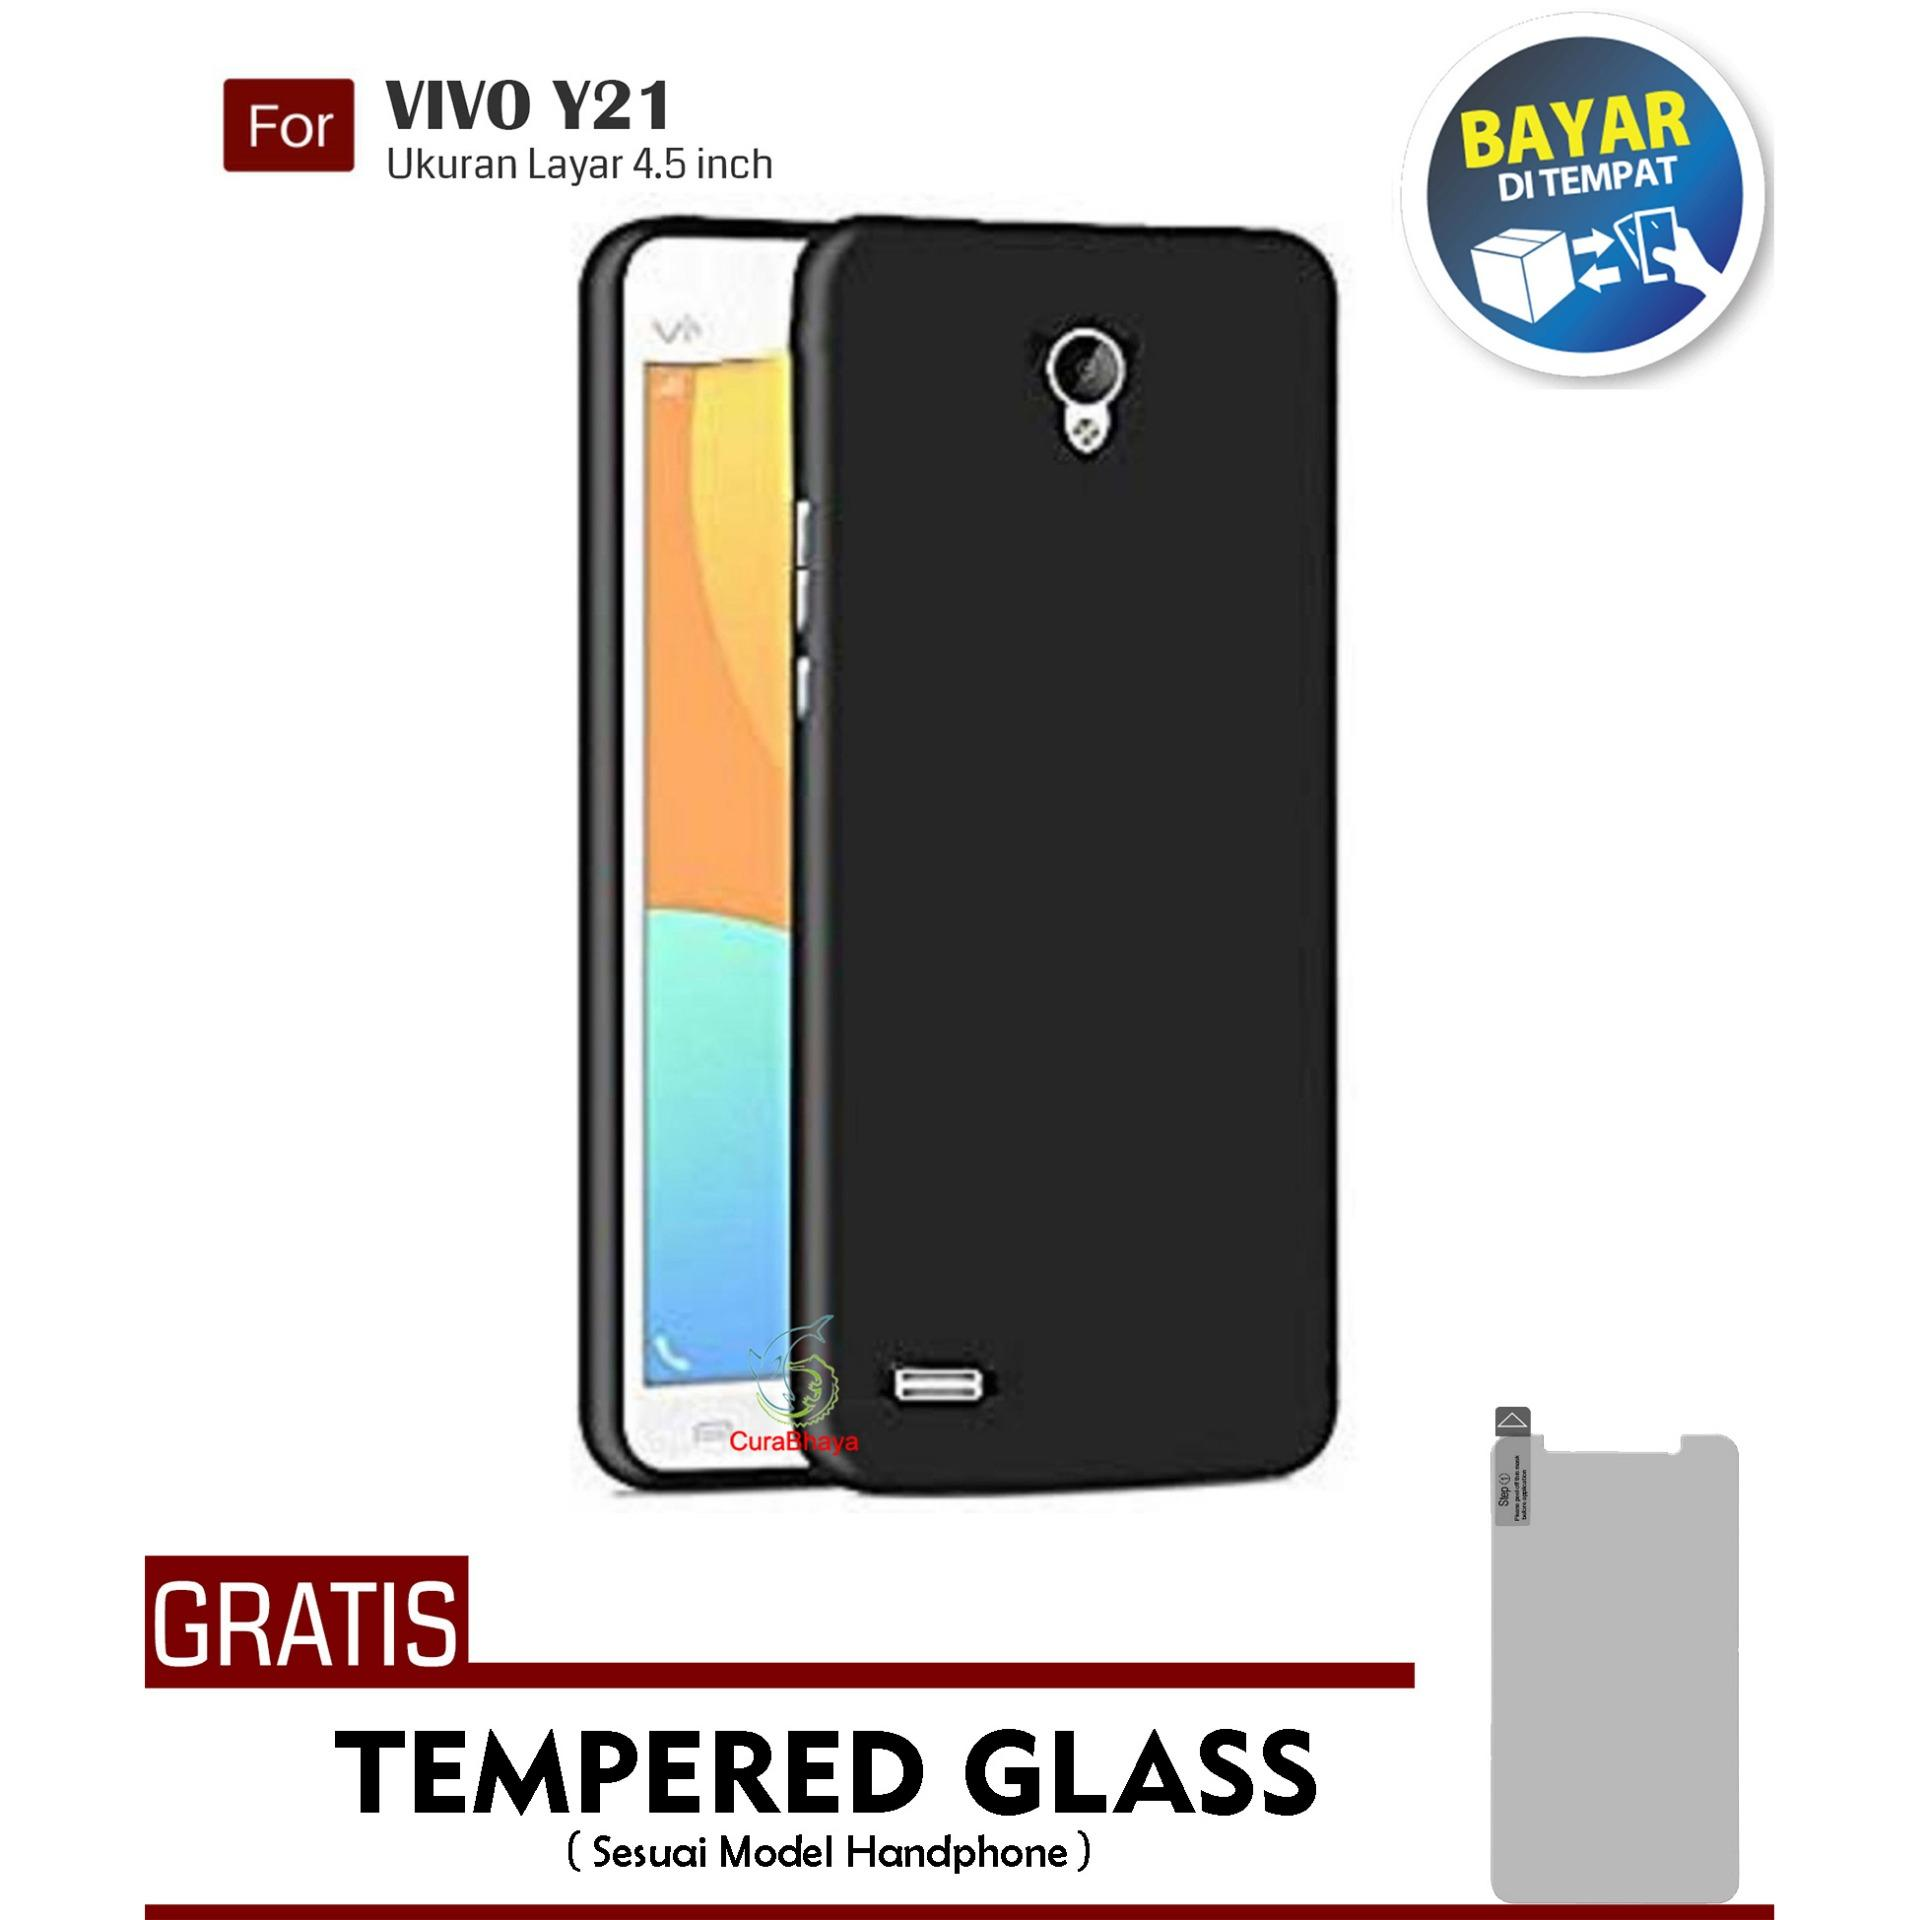 ... TEMPERED GLASS SCREEN PROTECTOR FREE IRING STAND . Source · MidNight Vivo Y21 / Y21L / Y21S / Y22 / Y22L / Y22s | Slim Case